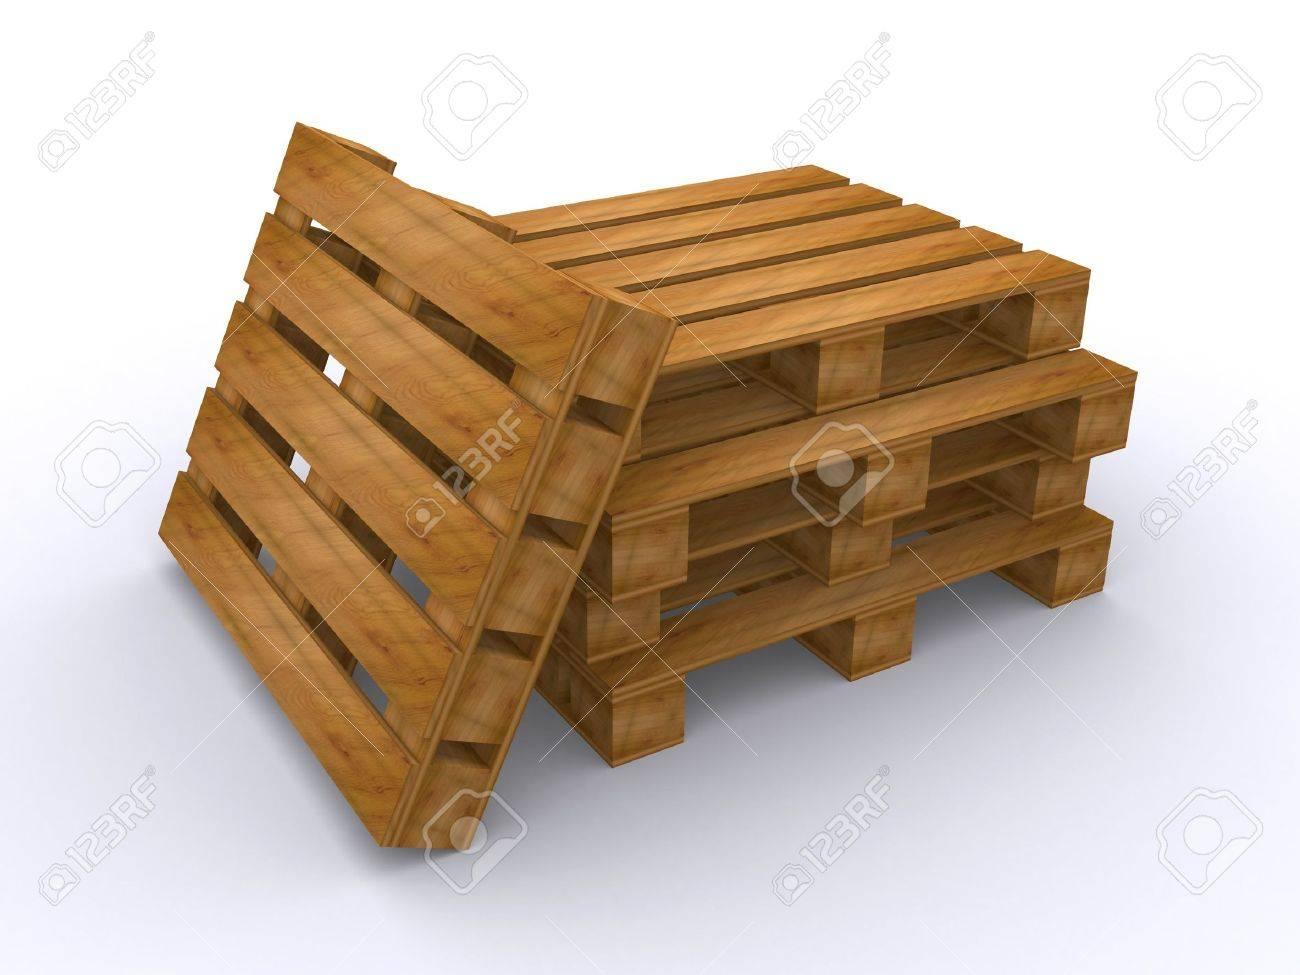 wooden pallets (3d render) Stock Photo - 6770621